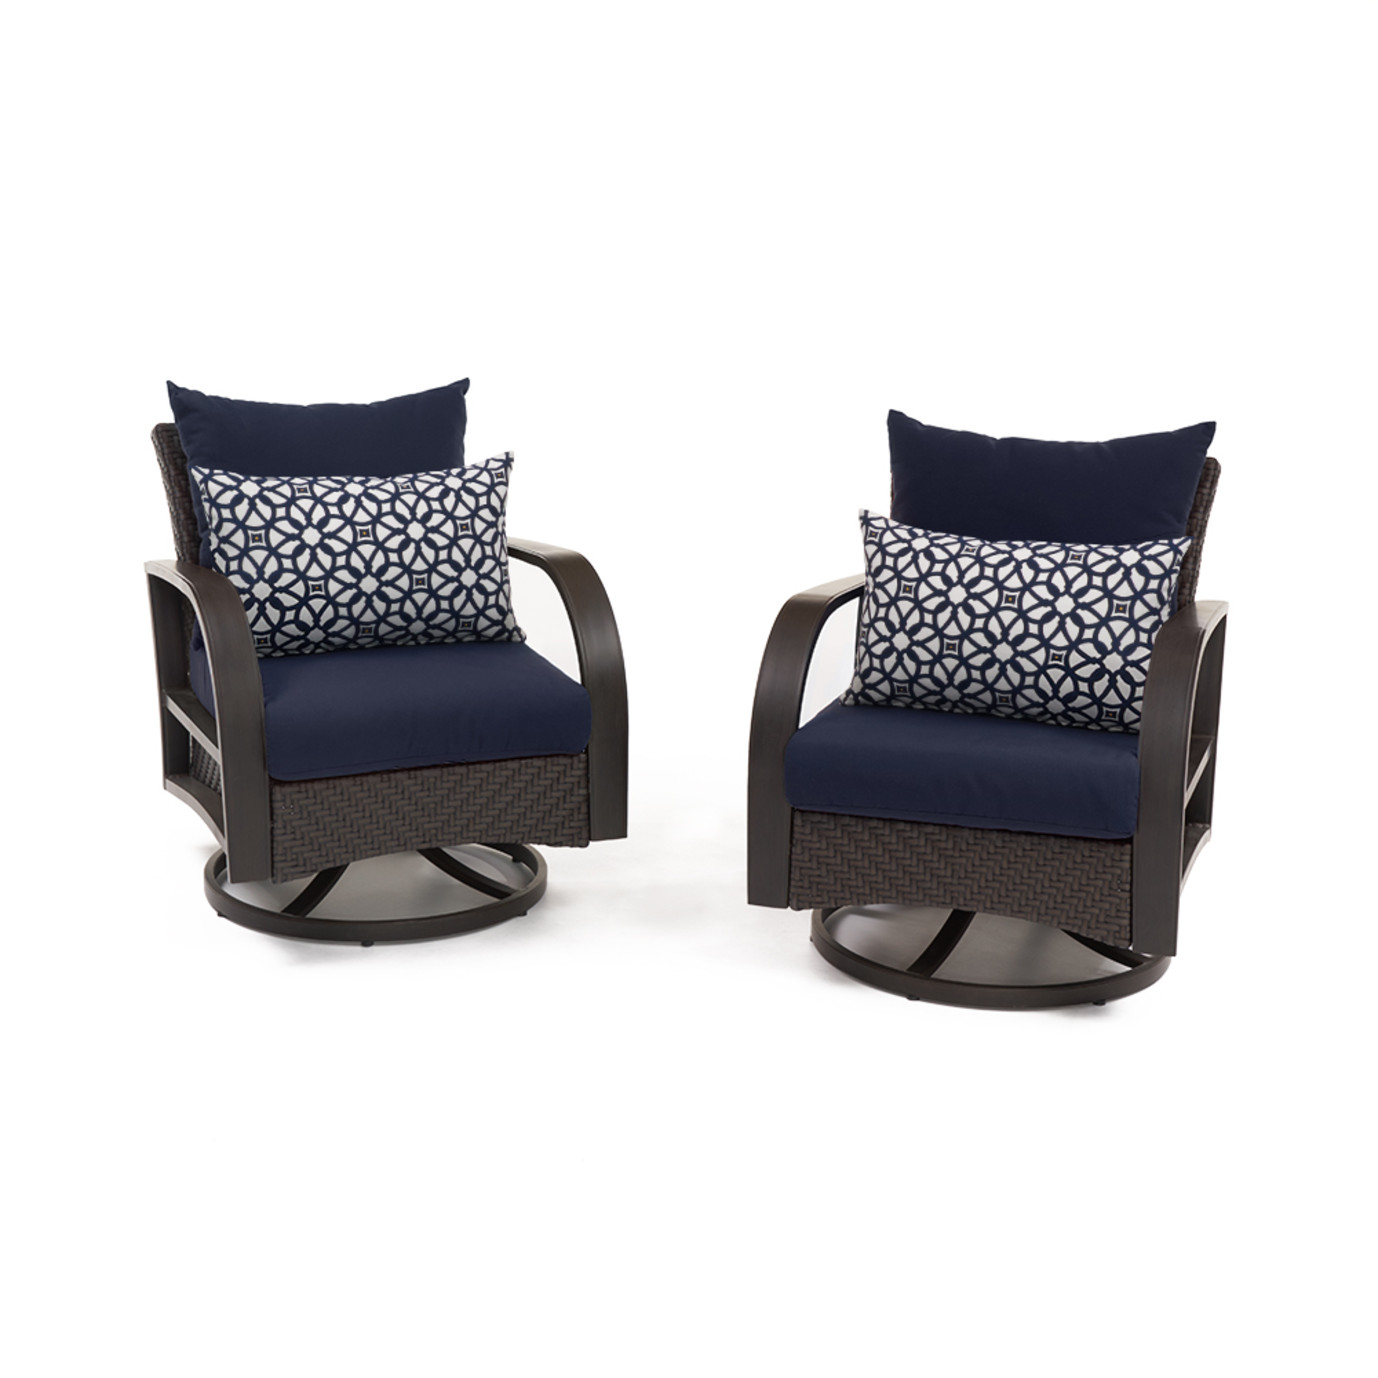 Barcelo™ Motion Club Chairs - Navy Blue